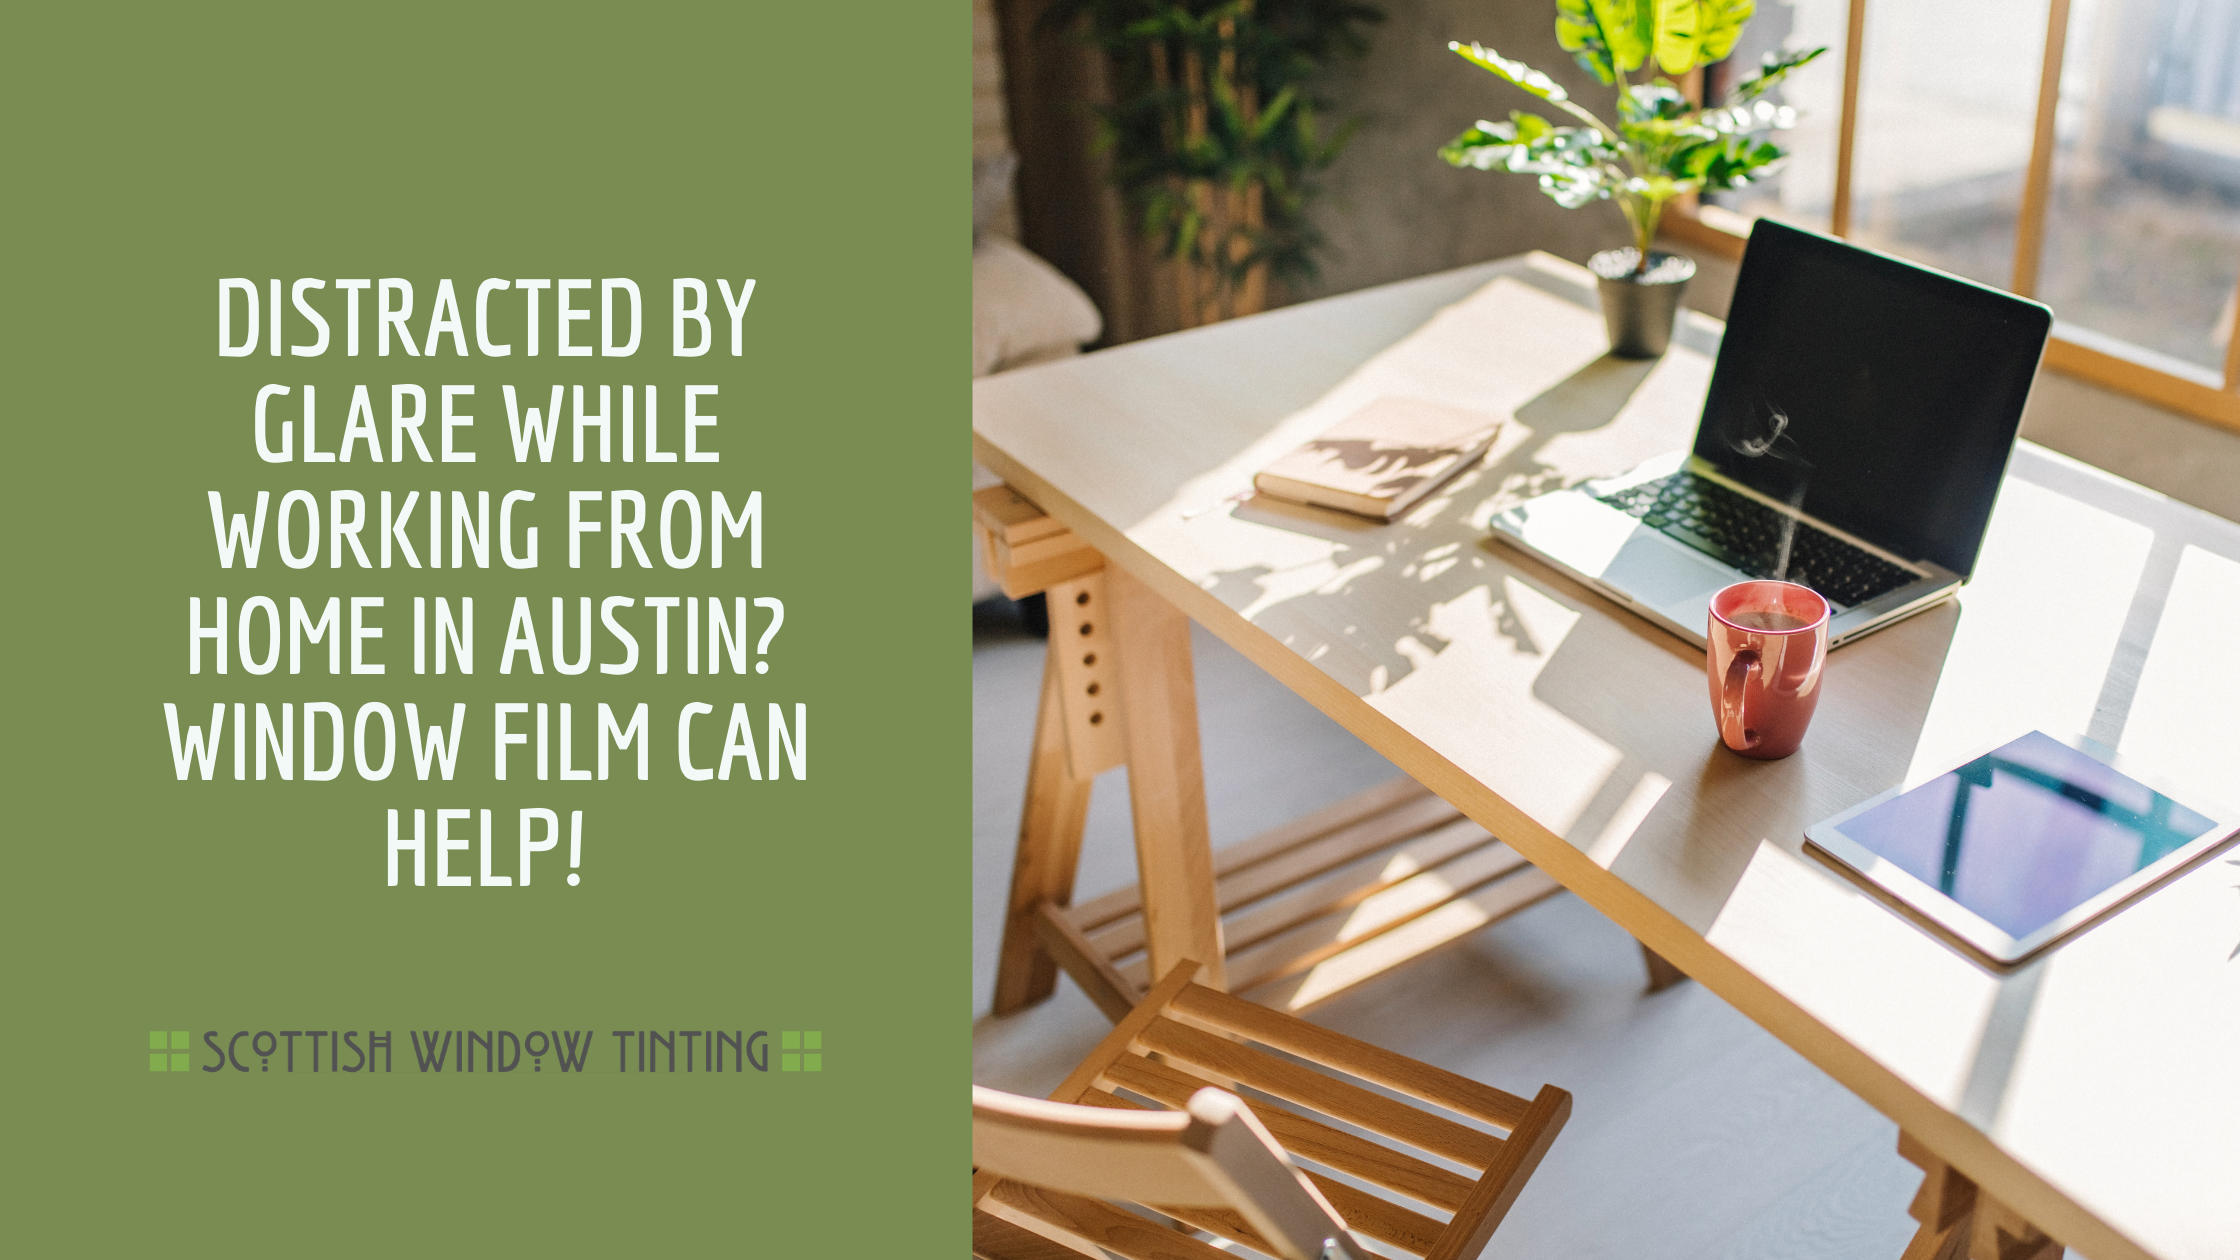 Distracted by Glare while Working from Home in Austin? Window Film Can Help!